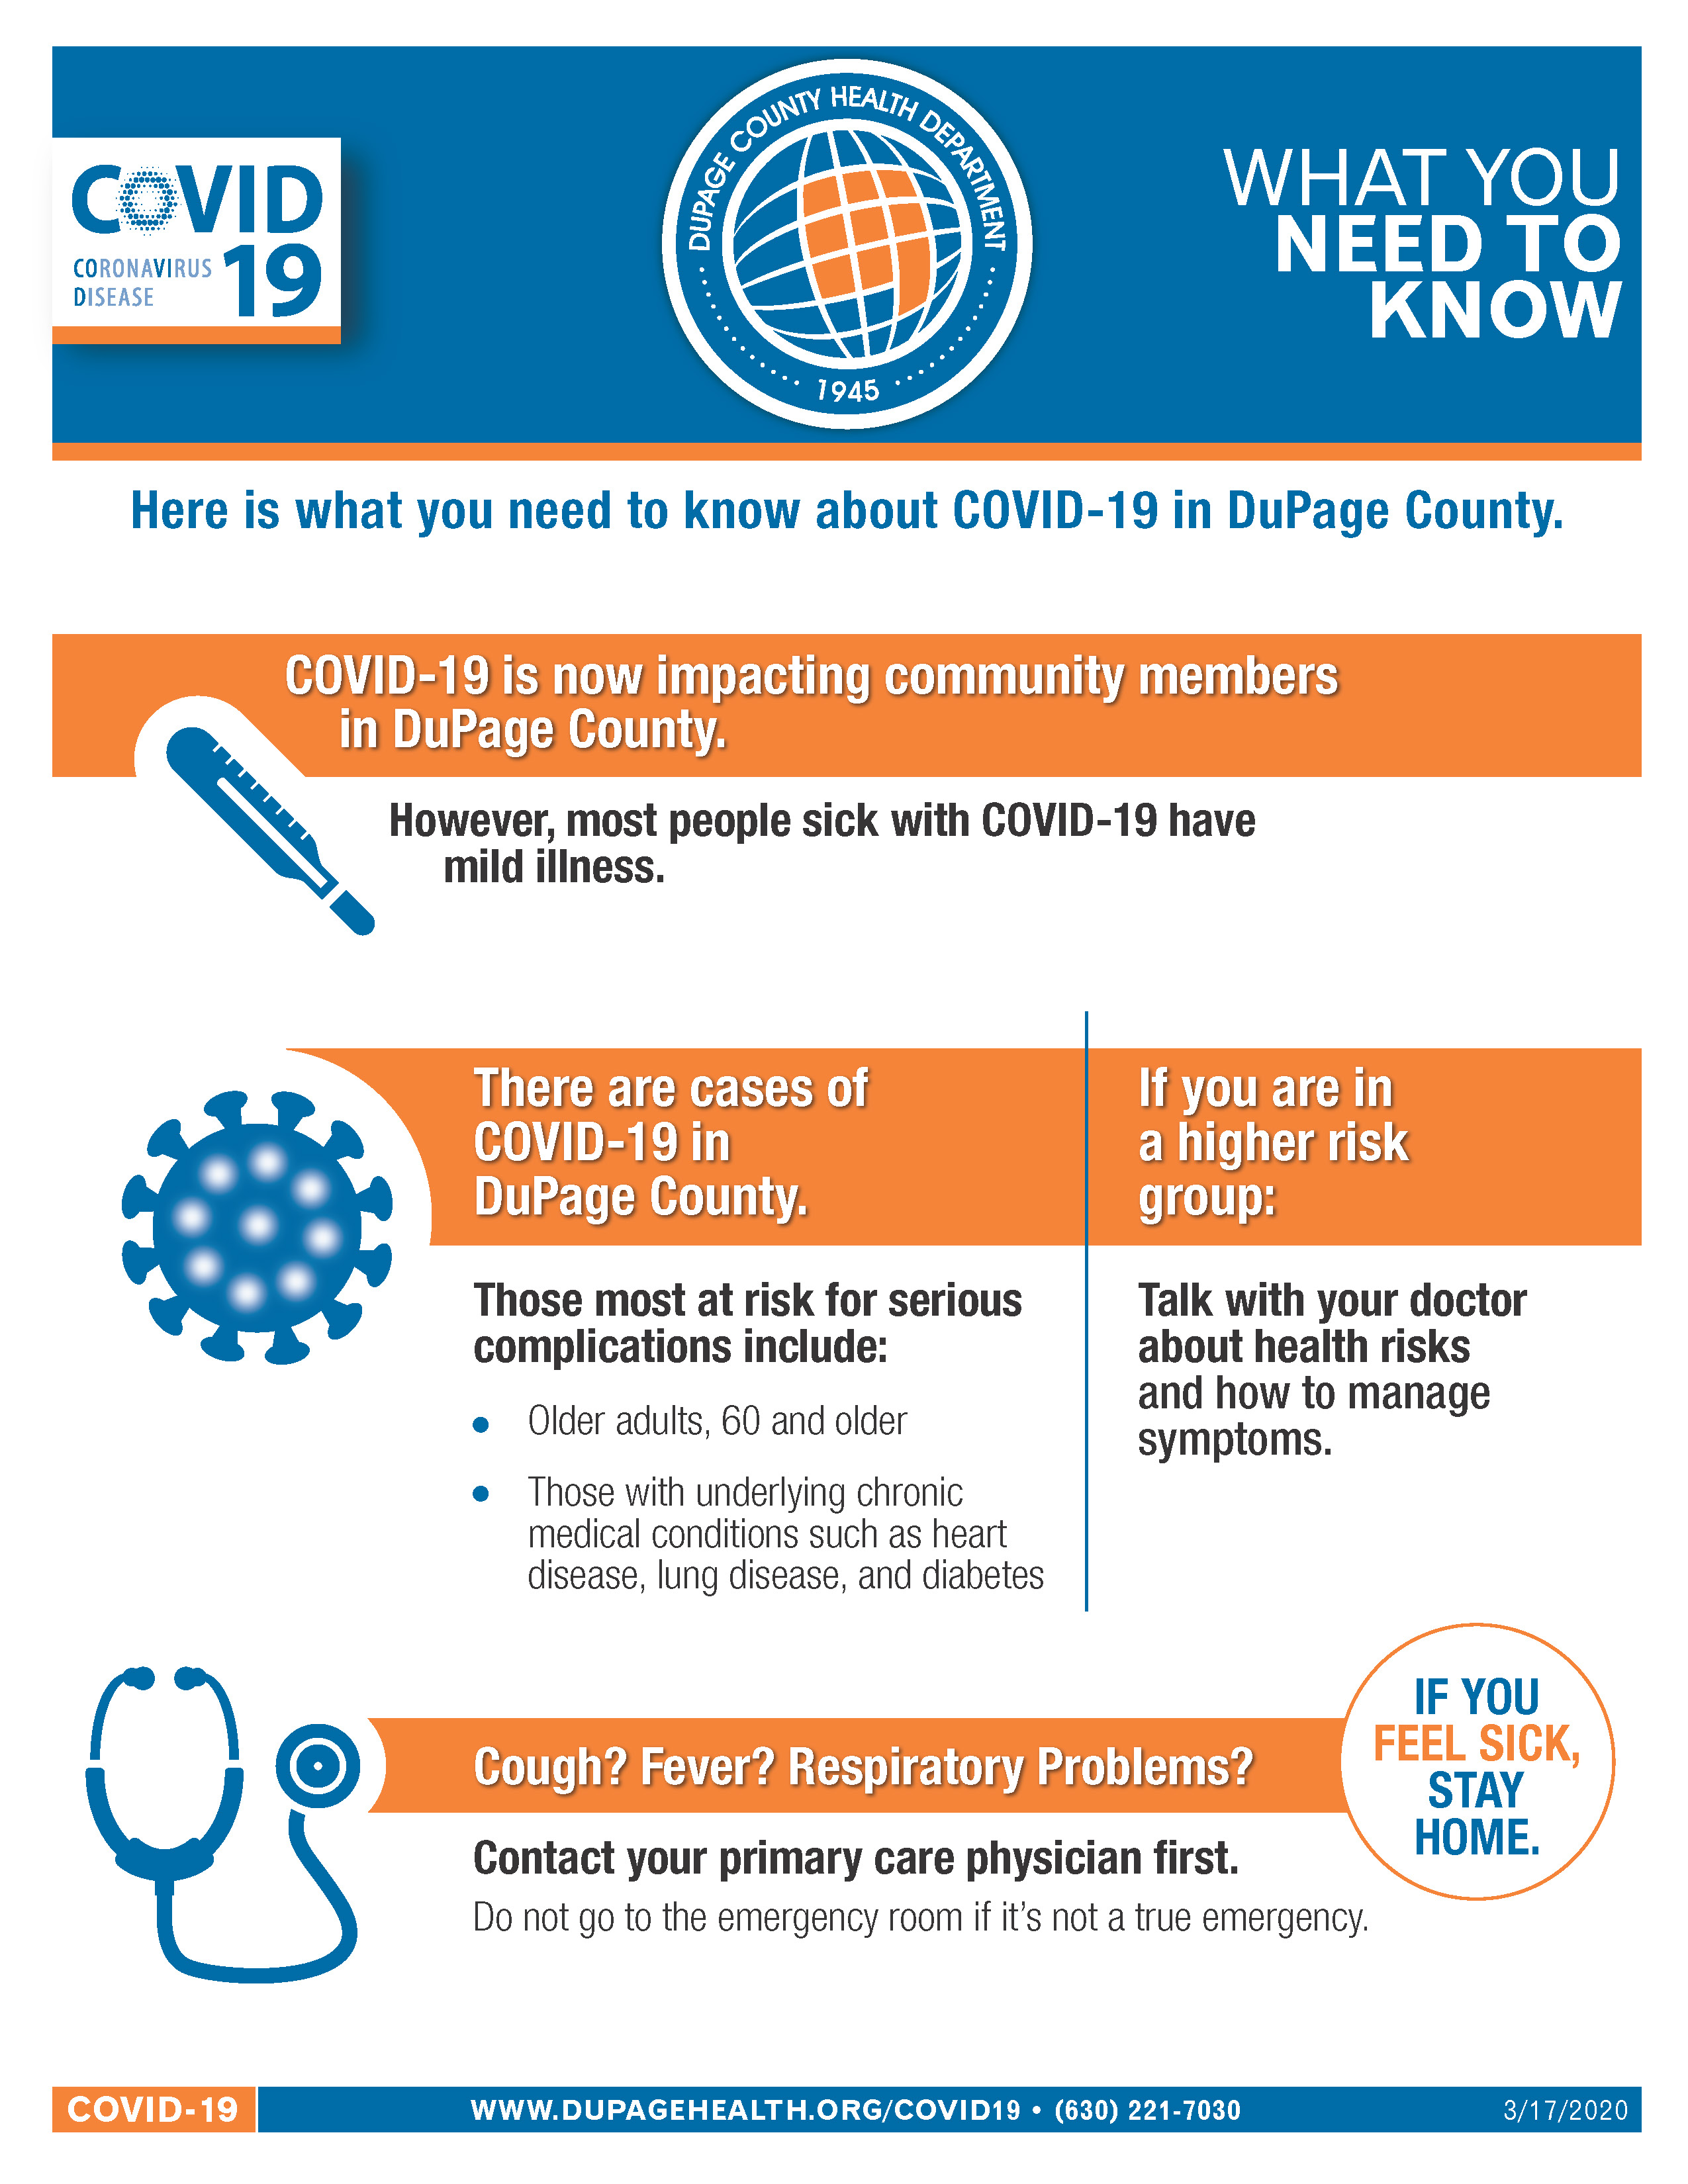 DCHD - COVID-19 Stop Spread and What You Need to Know (3-16)_Page_2